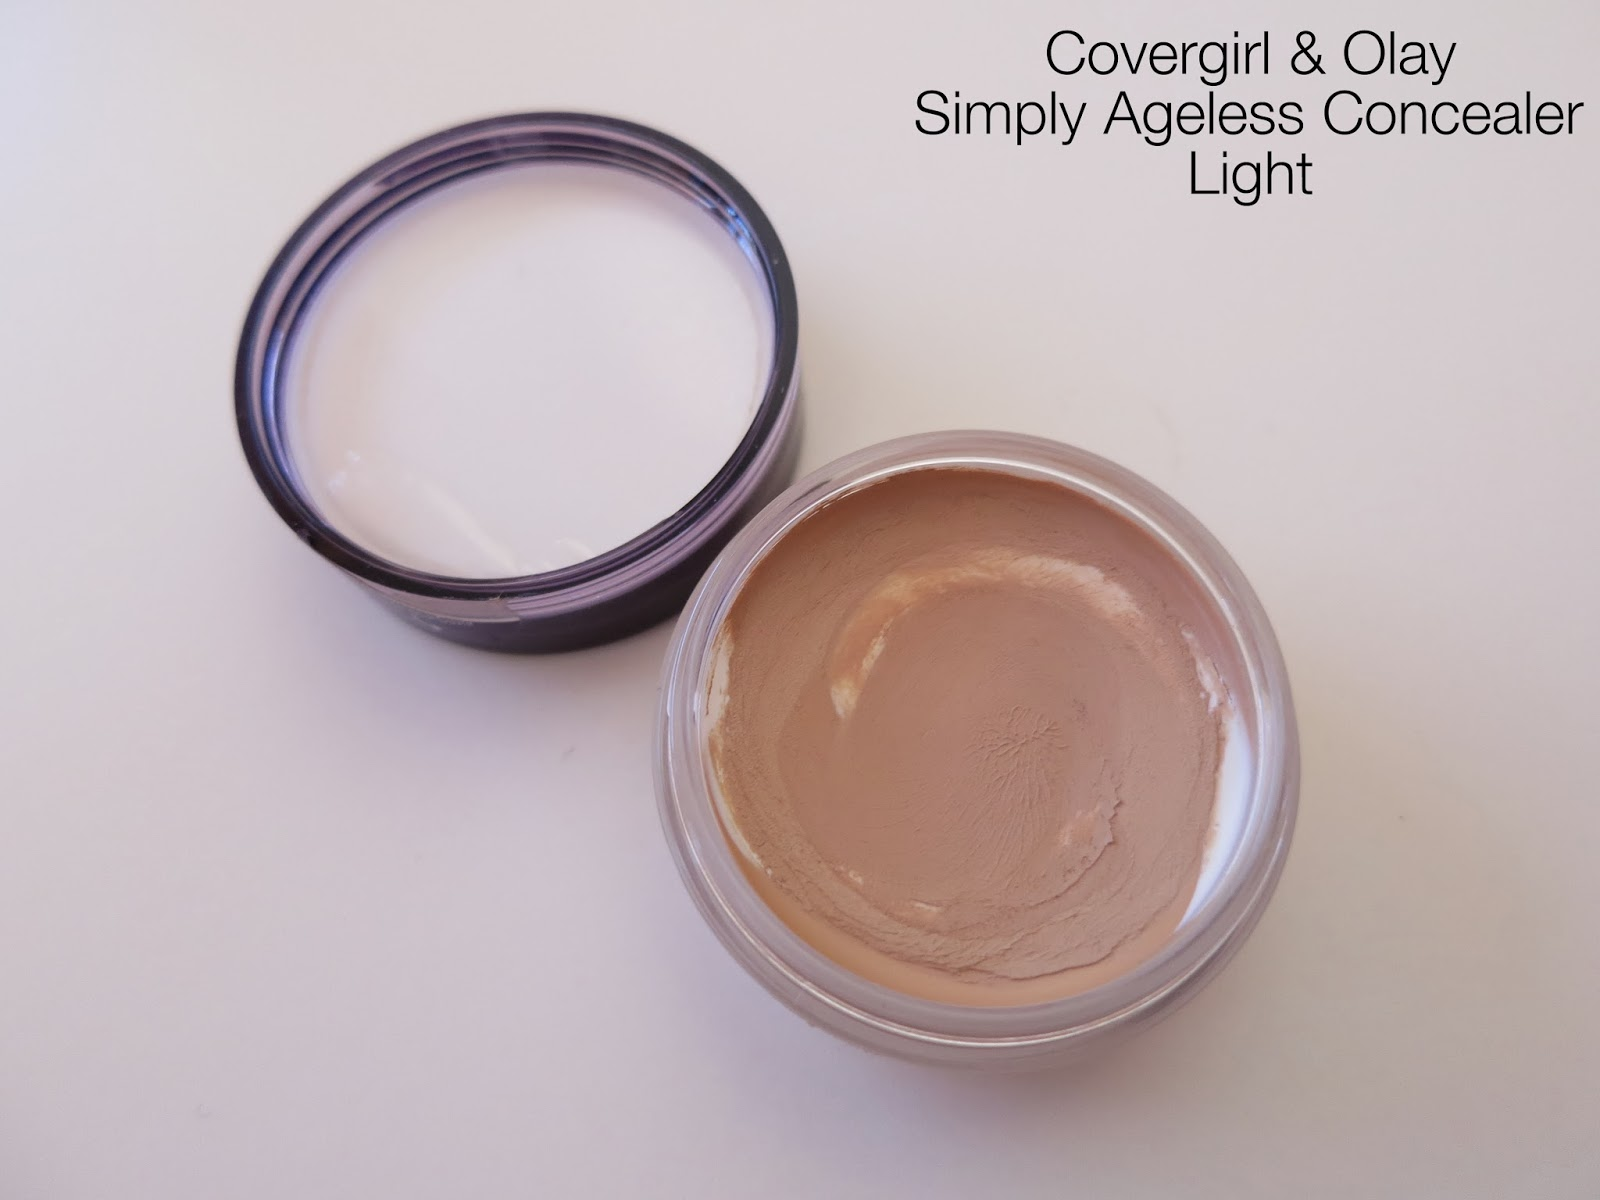 covergirl and olay simply ageless concealer, 5 best under eye concealers